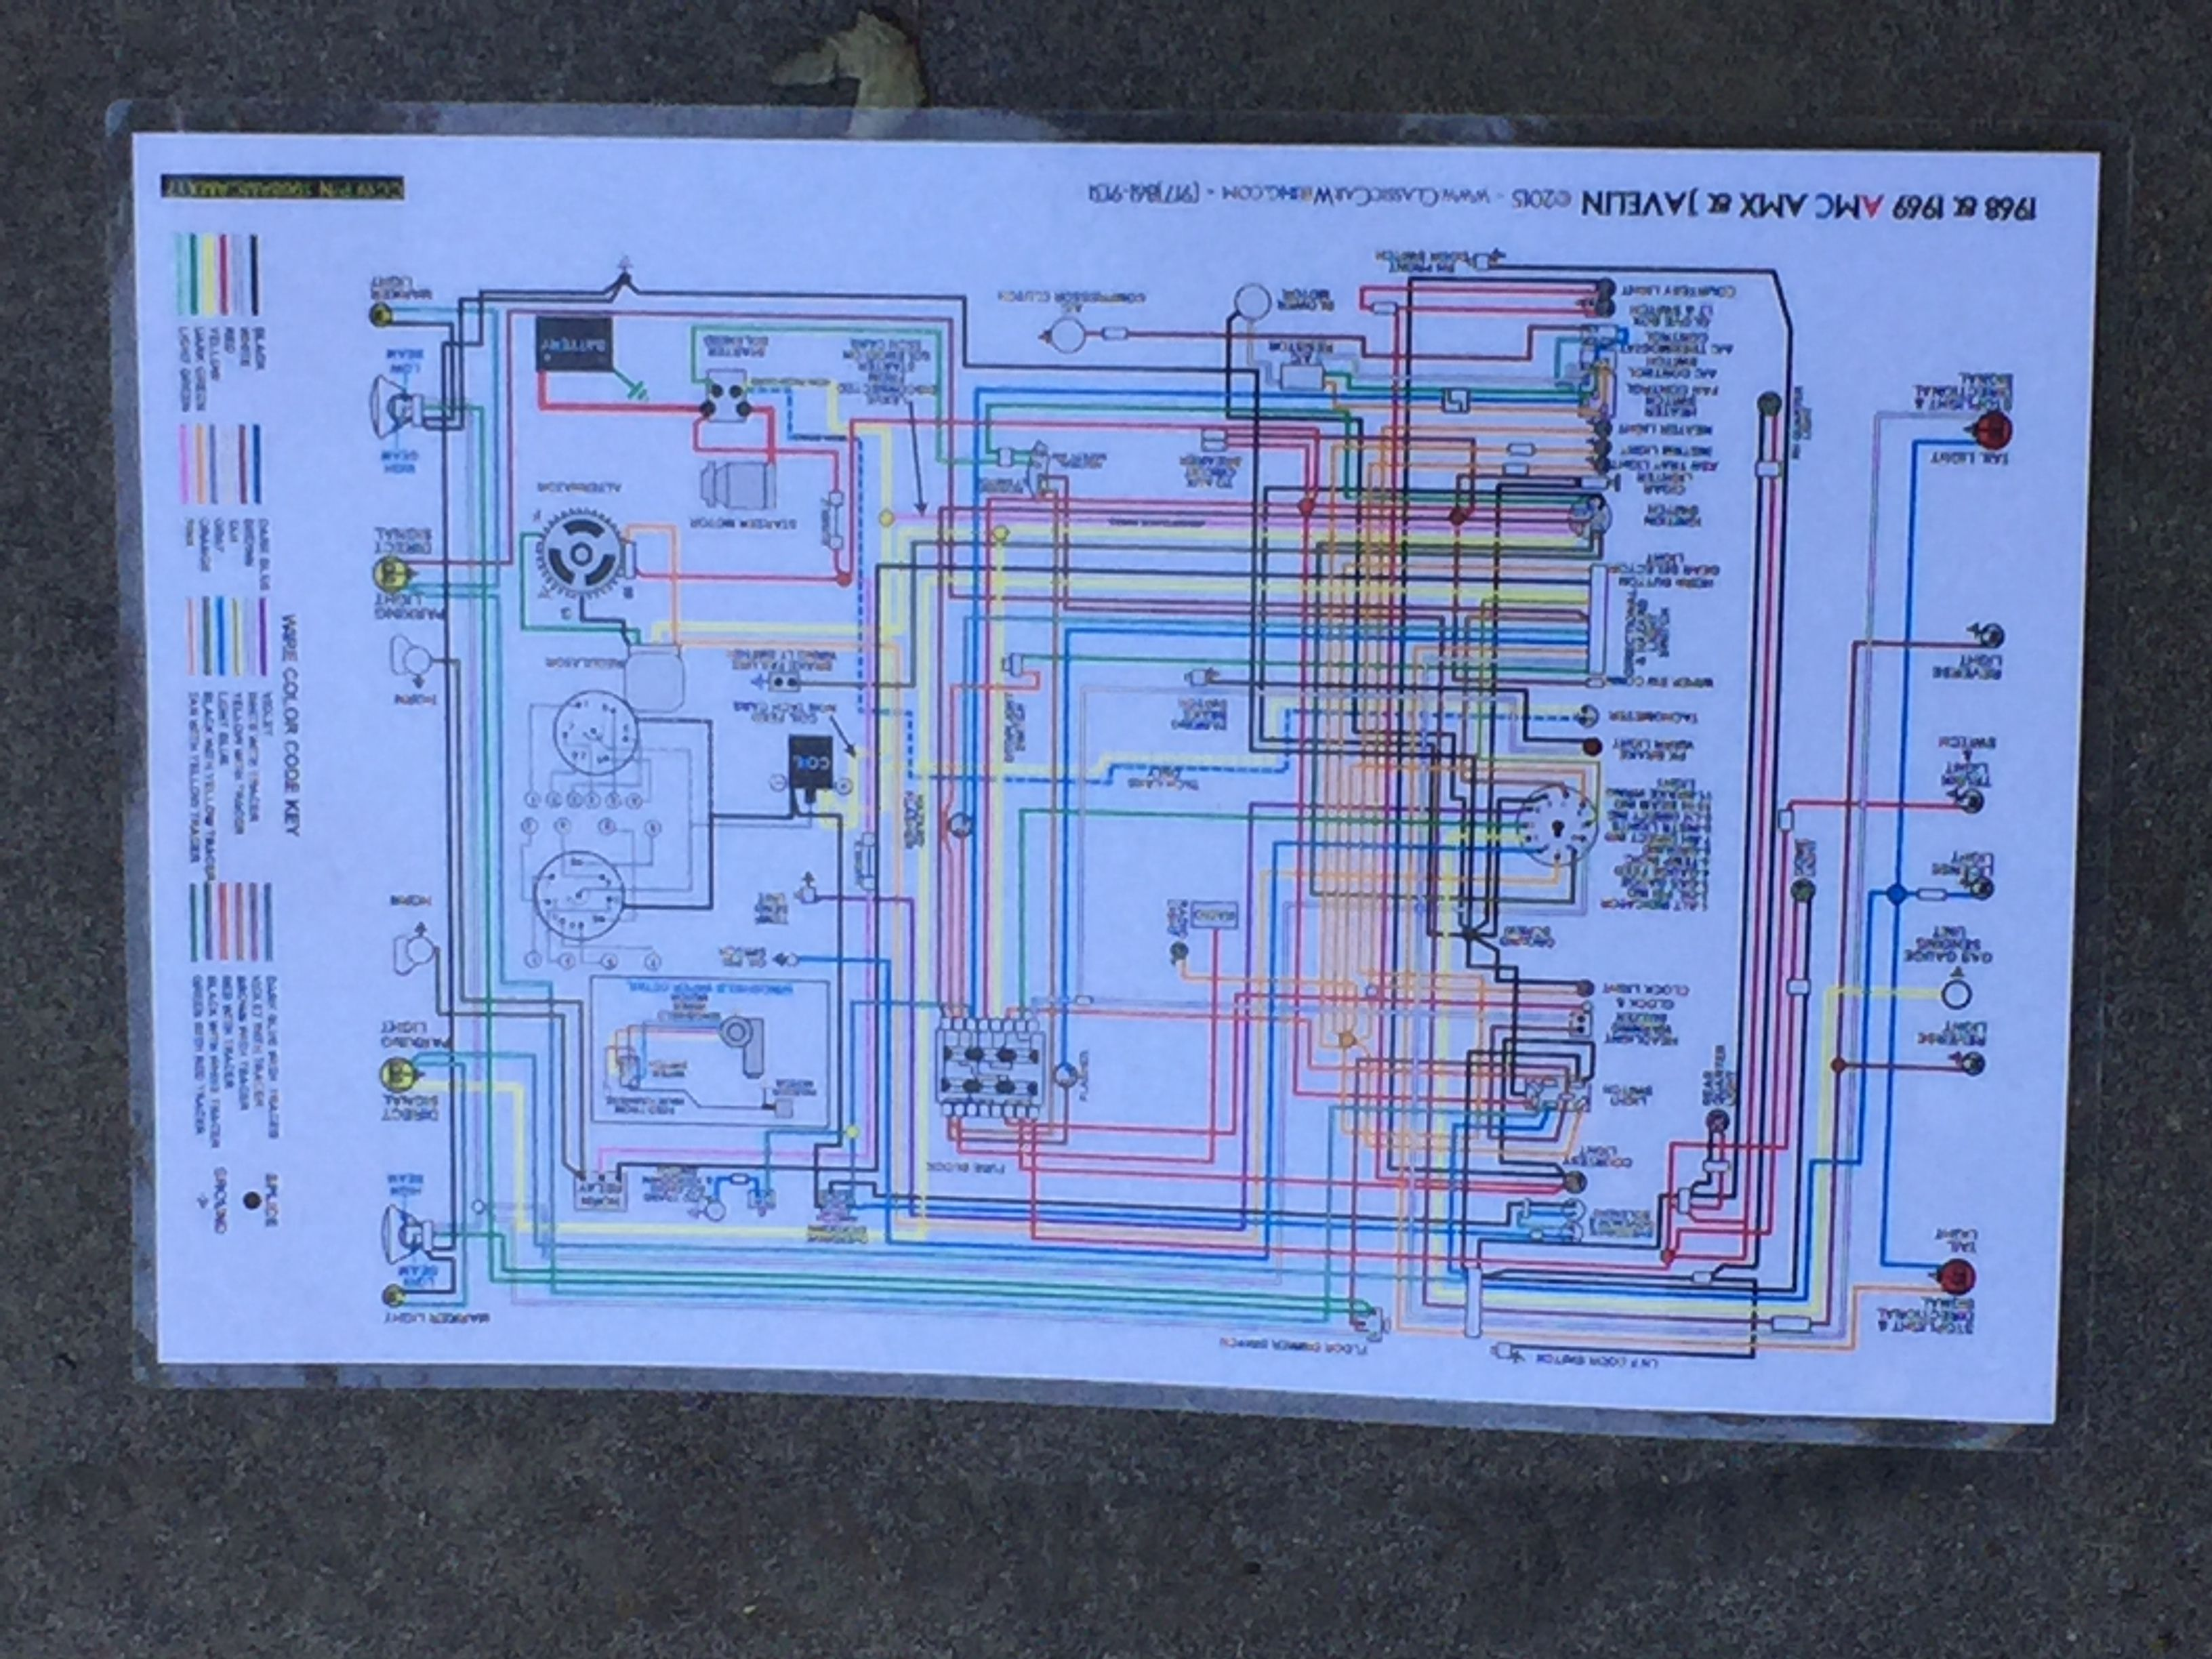 Stuck About Getting The Wiring Right On Javelin Hope This Is Gonna Help Javelin Diagram Projects